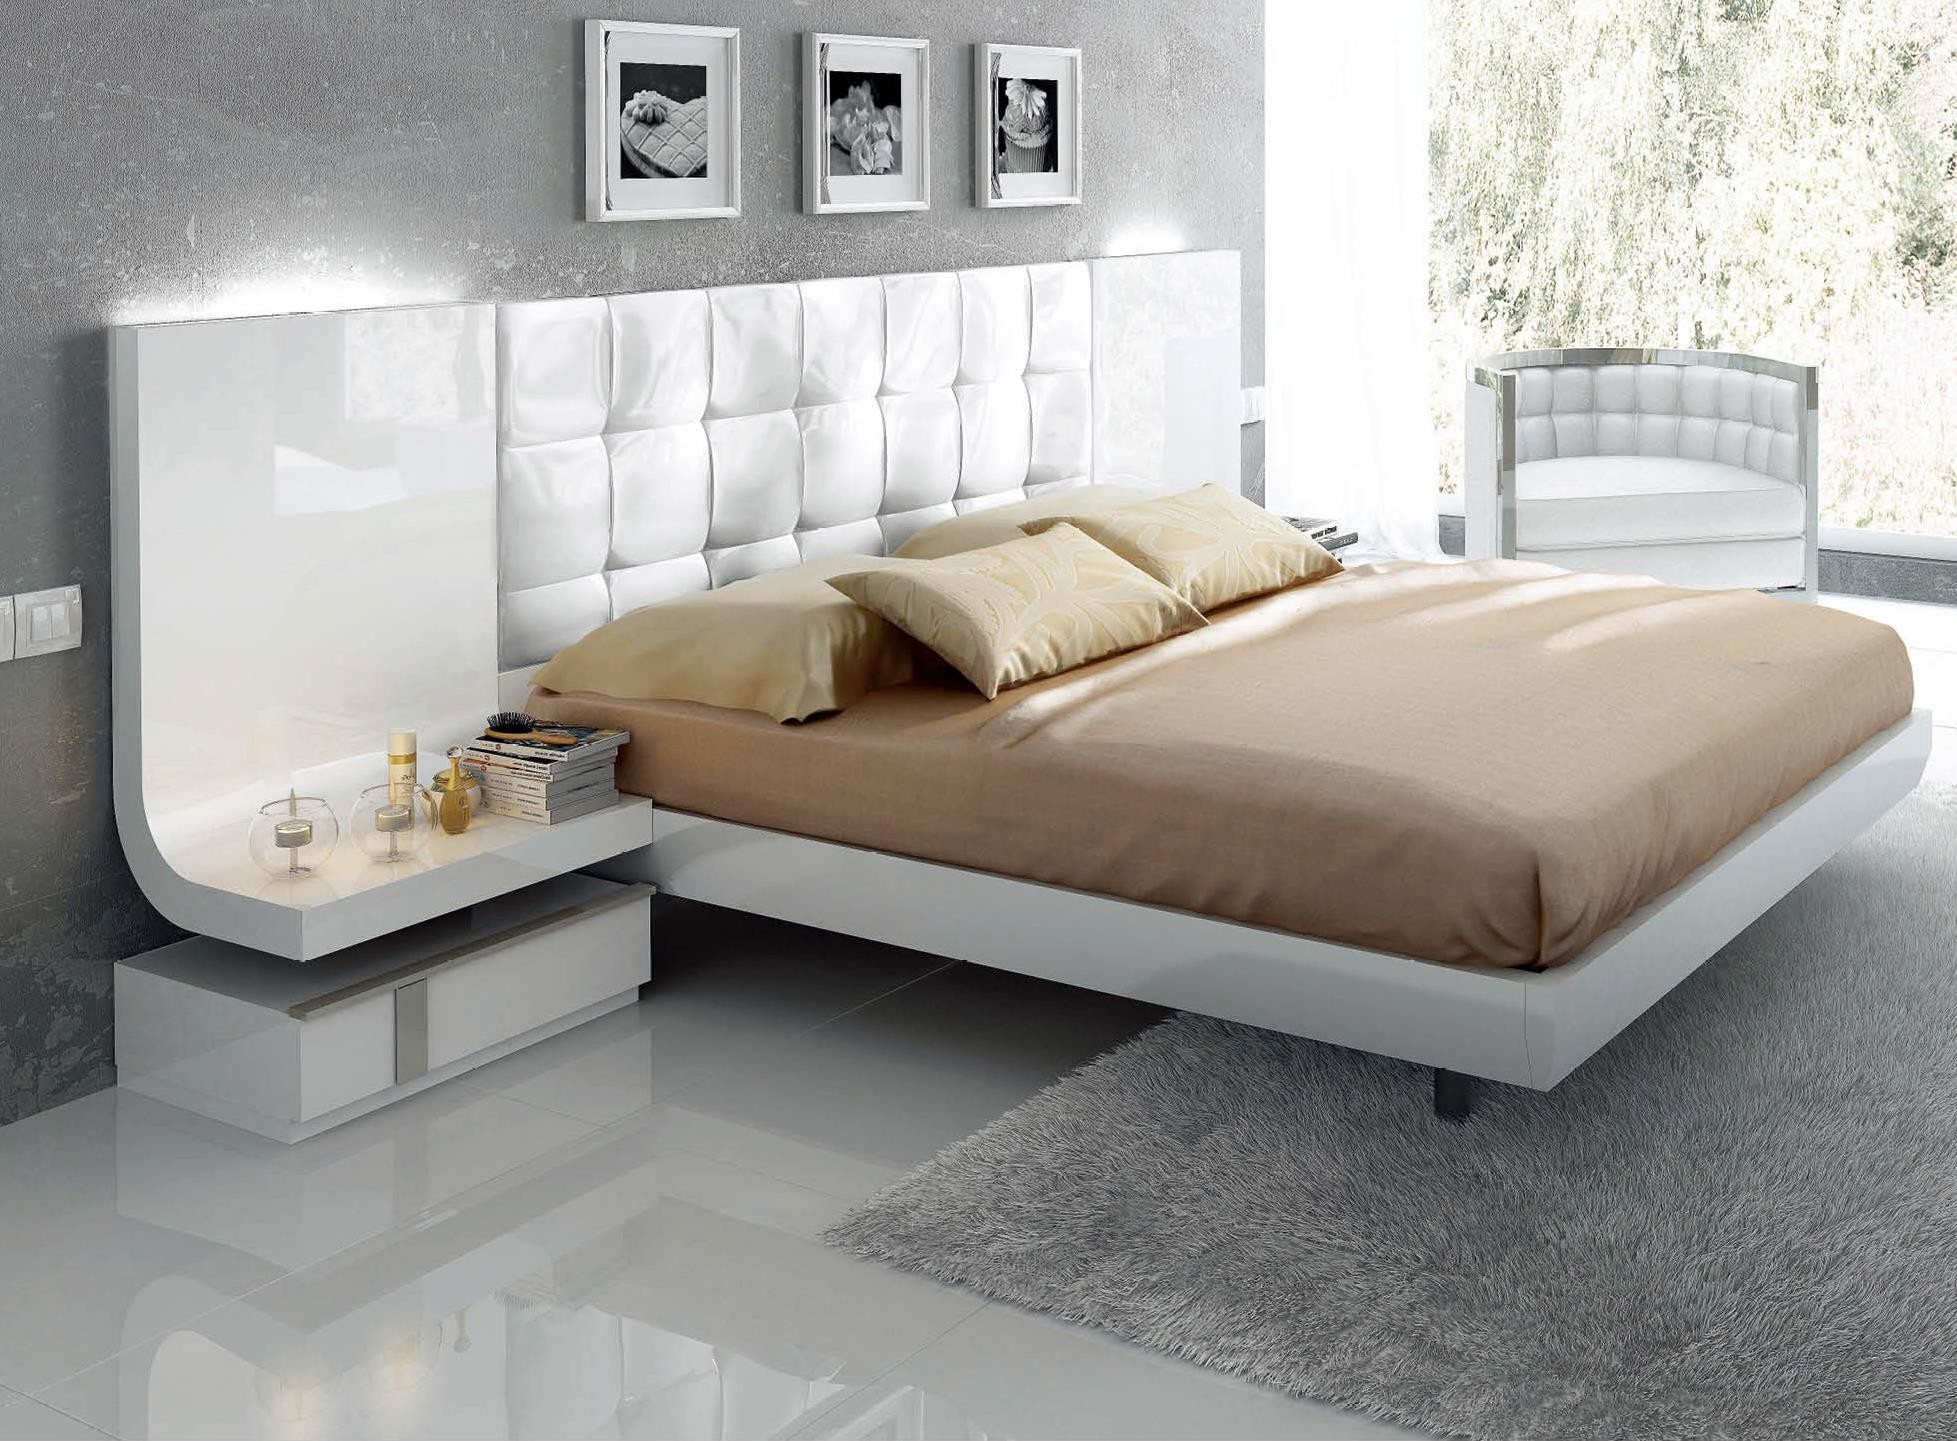 Granada Bedroom Set by ESF